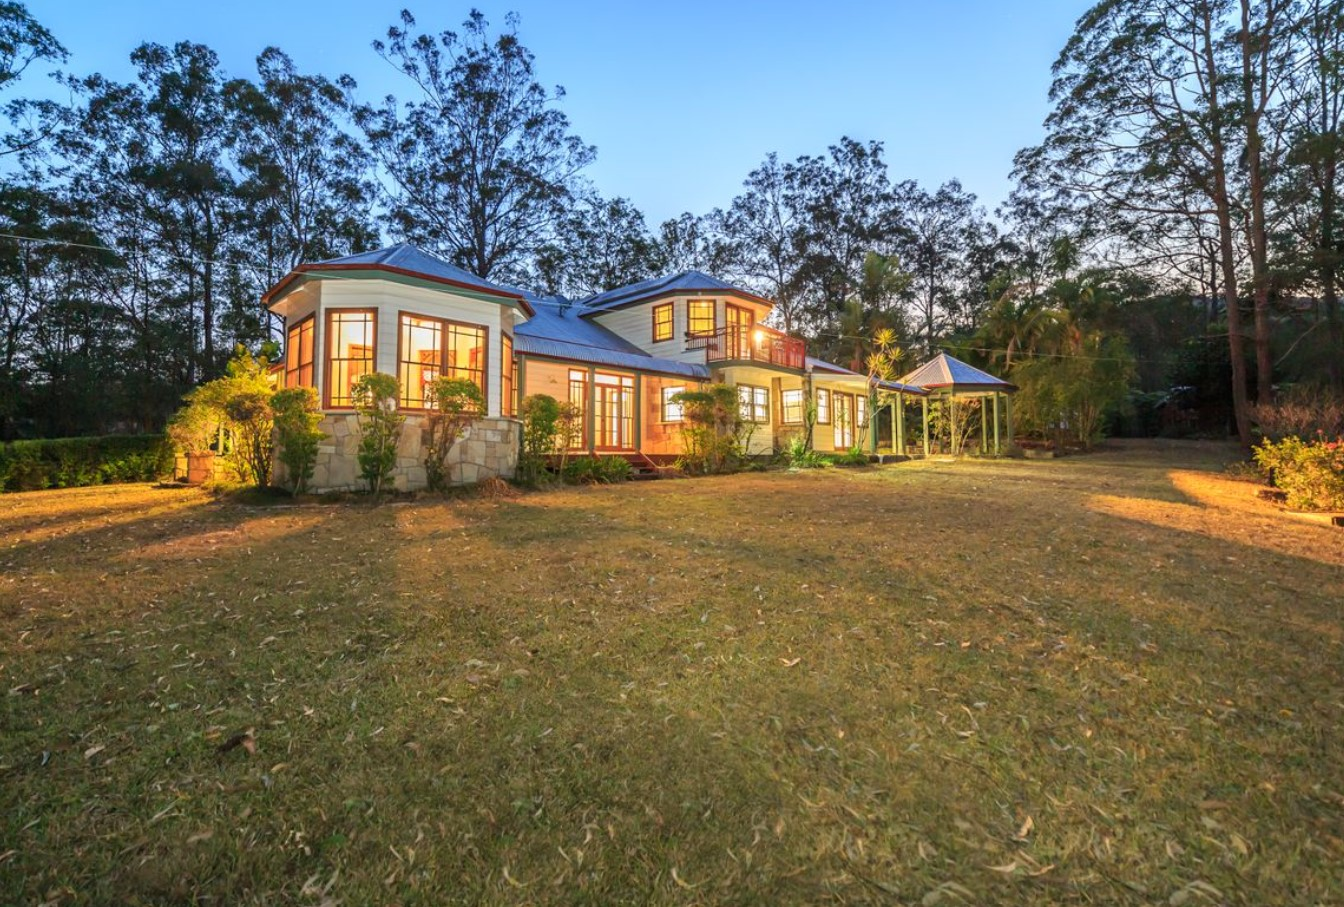 https://raywhitebroadbeach.com/properties/residential-for-sale/qld/mount-nathan-4211/house/2175395